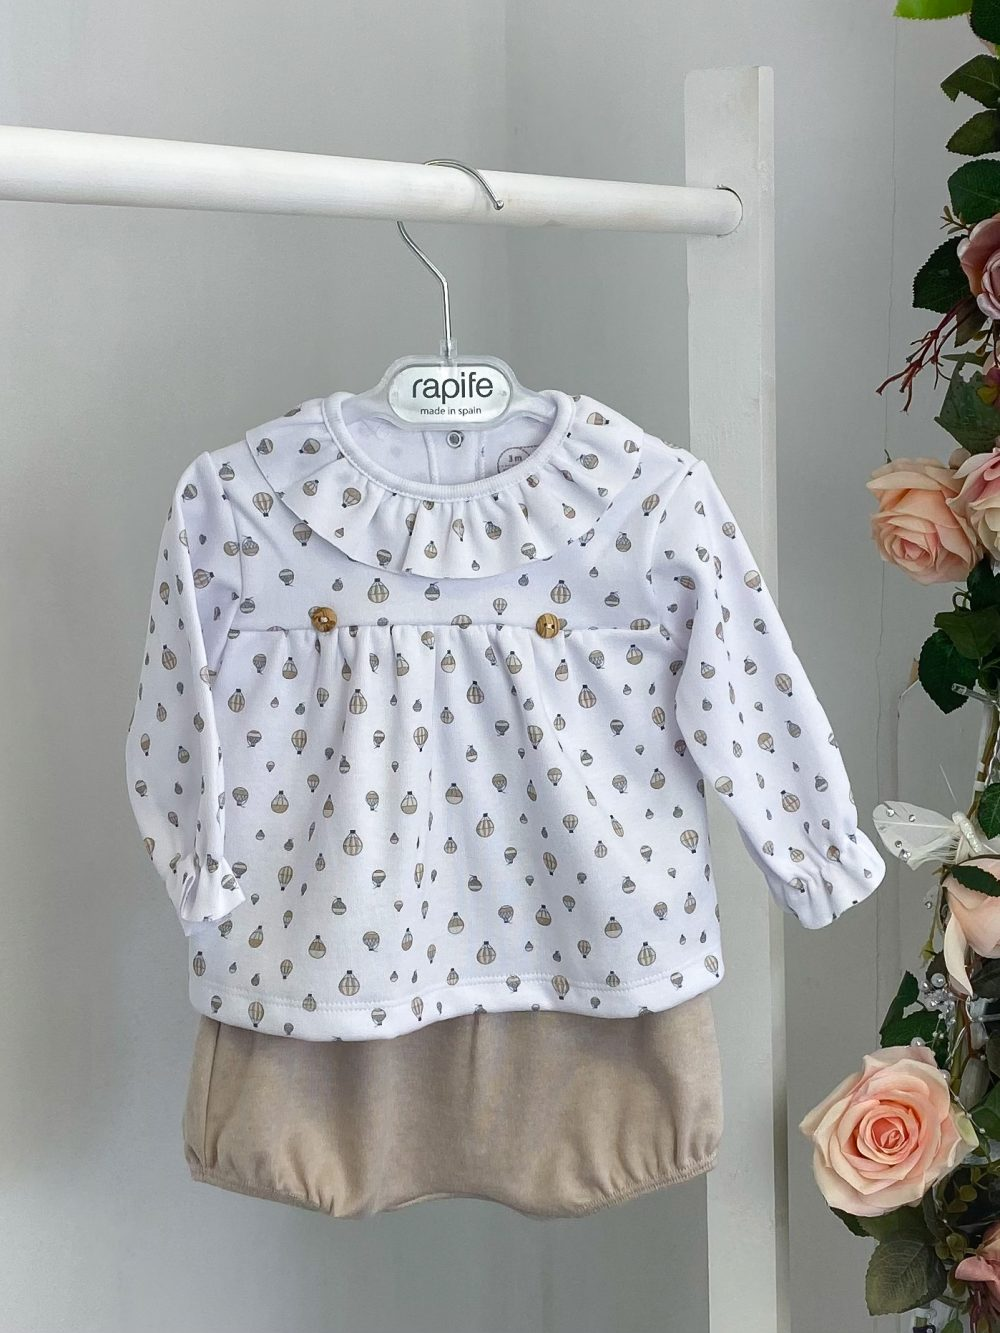 Hot Air Balloon Frilled Top & Bloomers